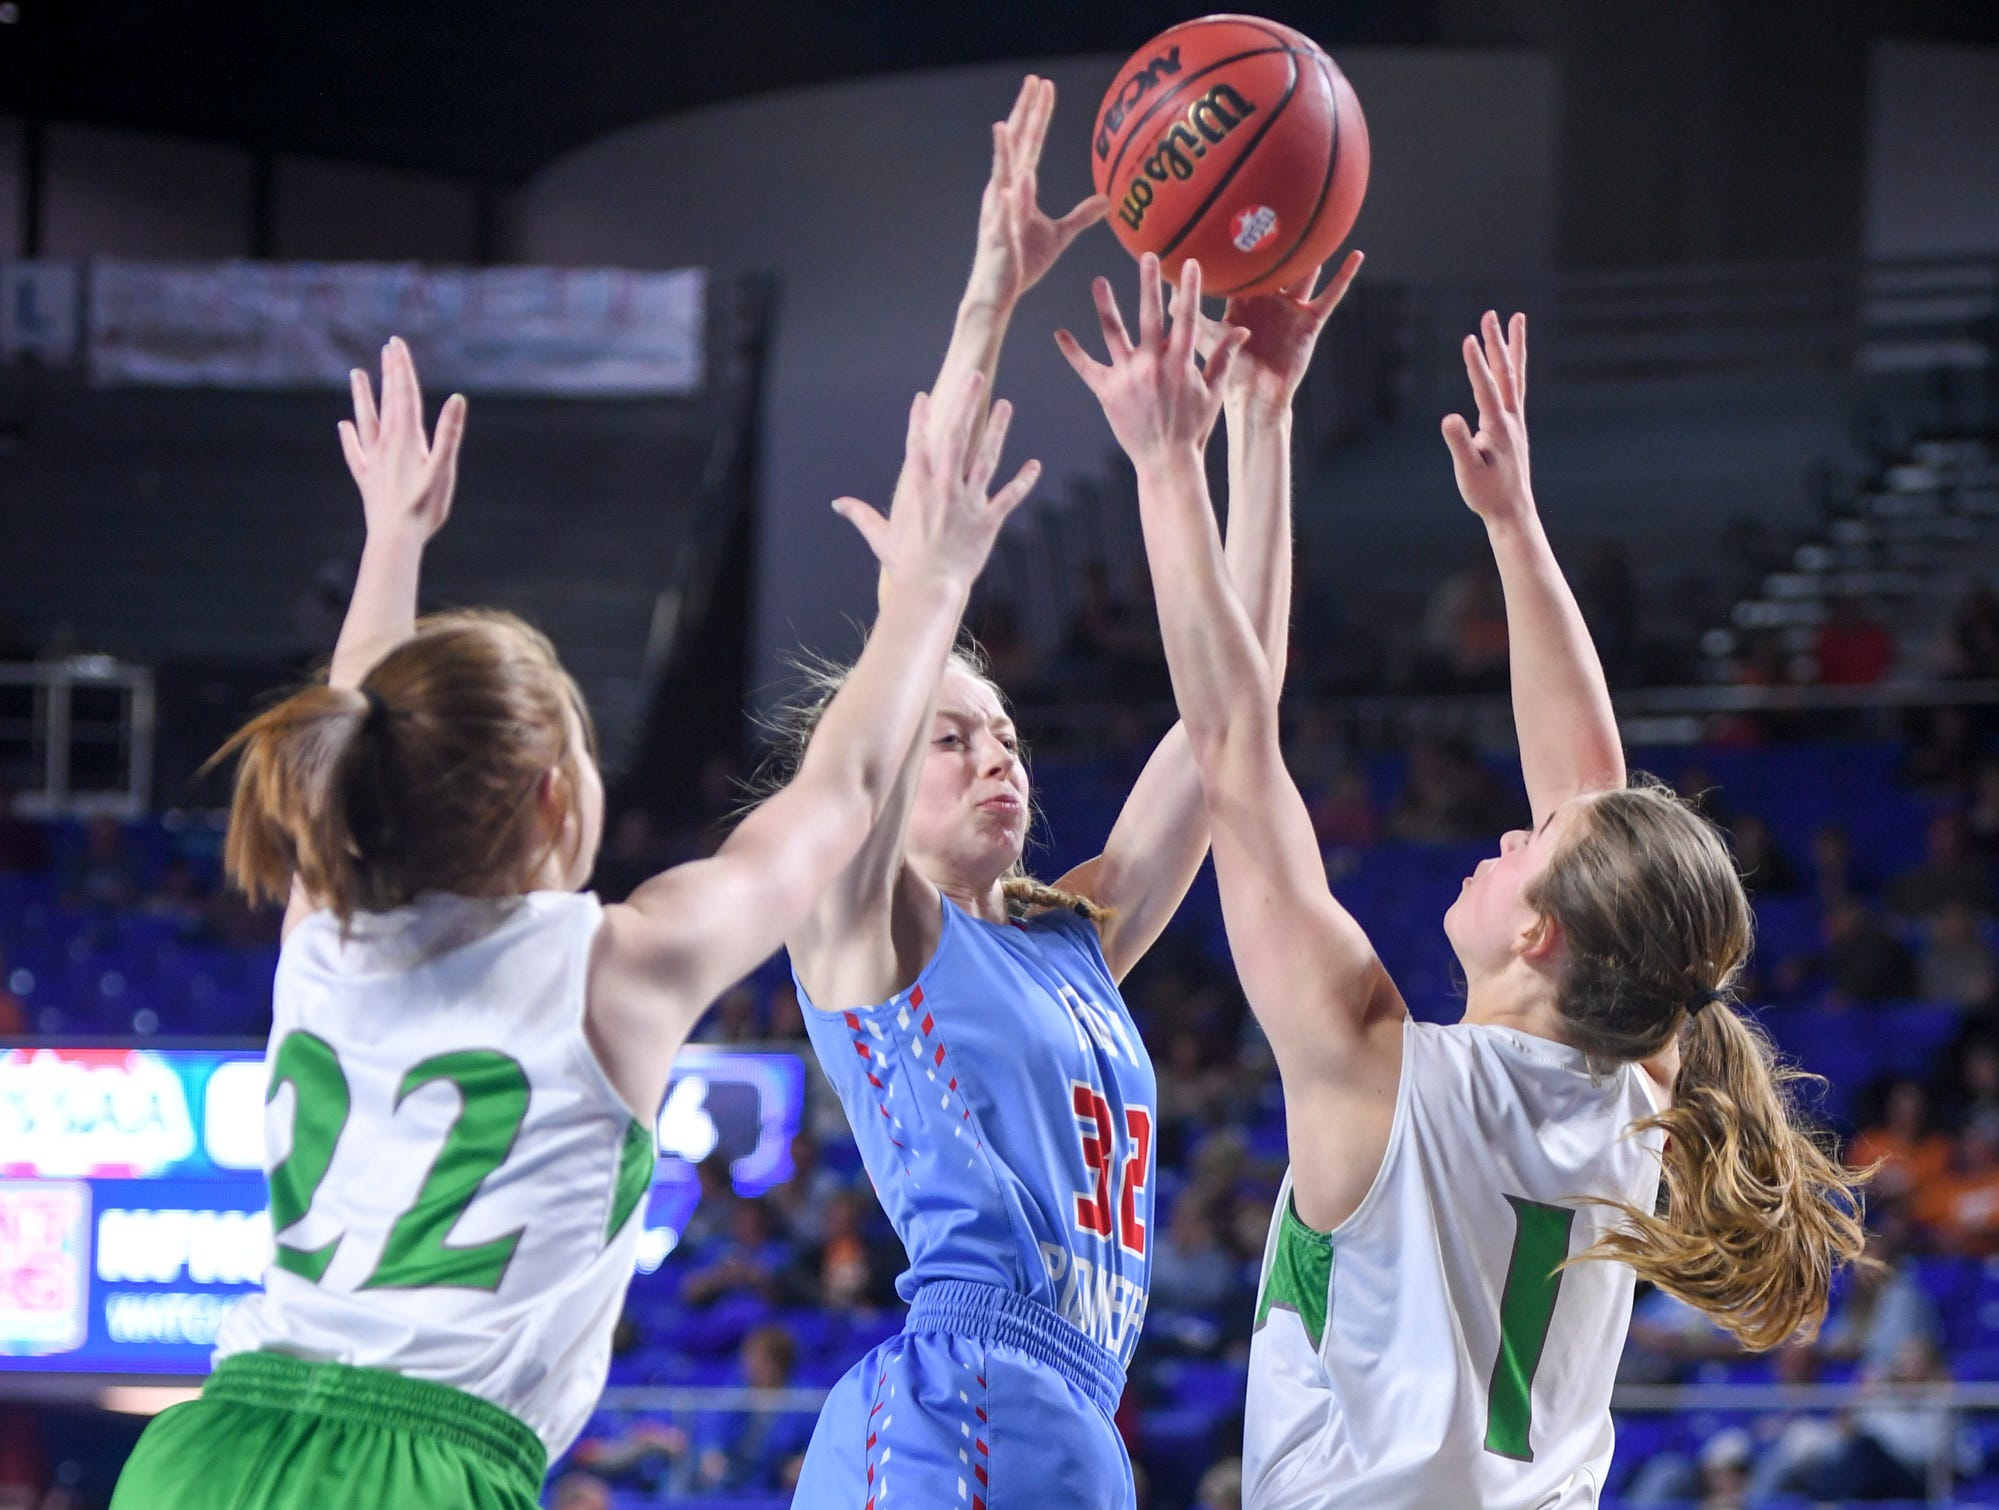 Gibson County's KJ White (32) attempts to split Midway's Emily Cawood (22) and Midway's Caitlyn Ross (1) during their Class A semifinal game, Friday, March 8, 2019, in  Murfreesboro.